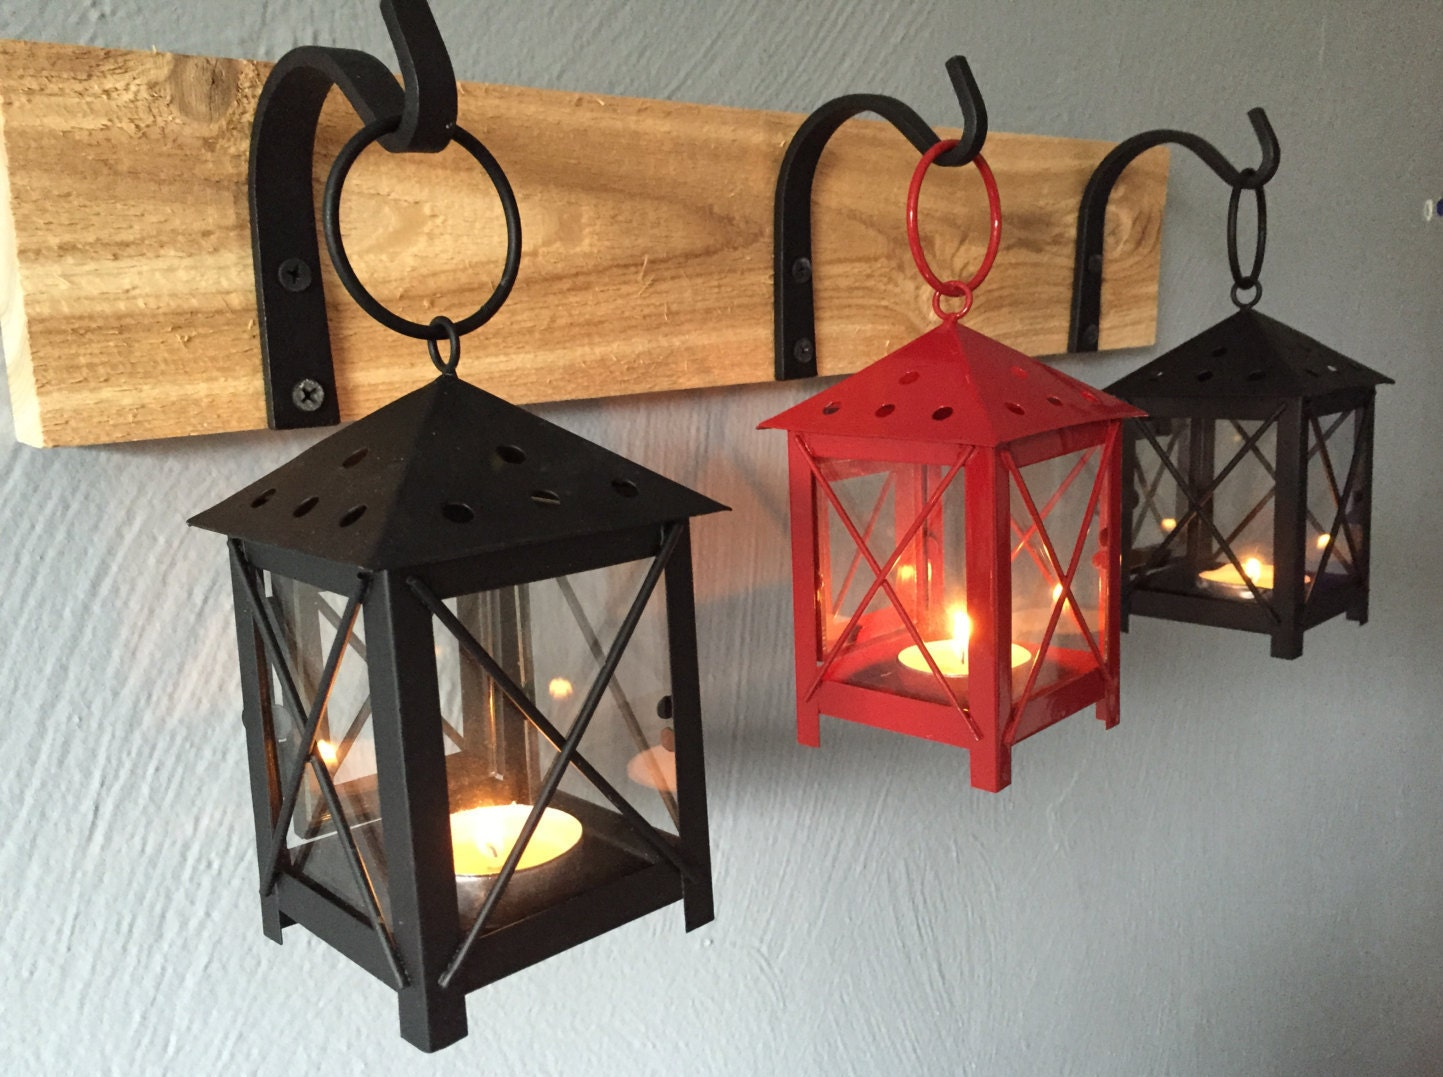 Rustic Candle Lantern Sconces Wall Decor Wall by DesignsByMandK